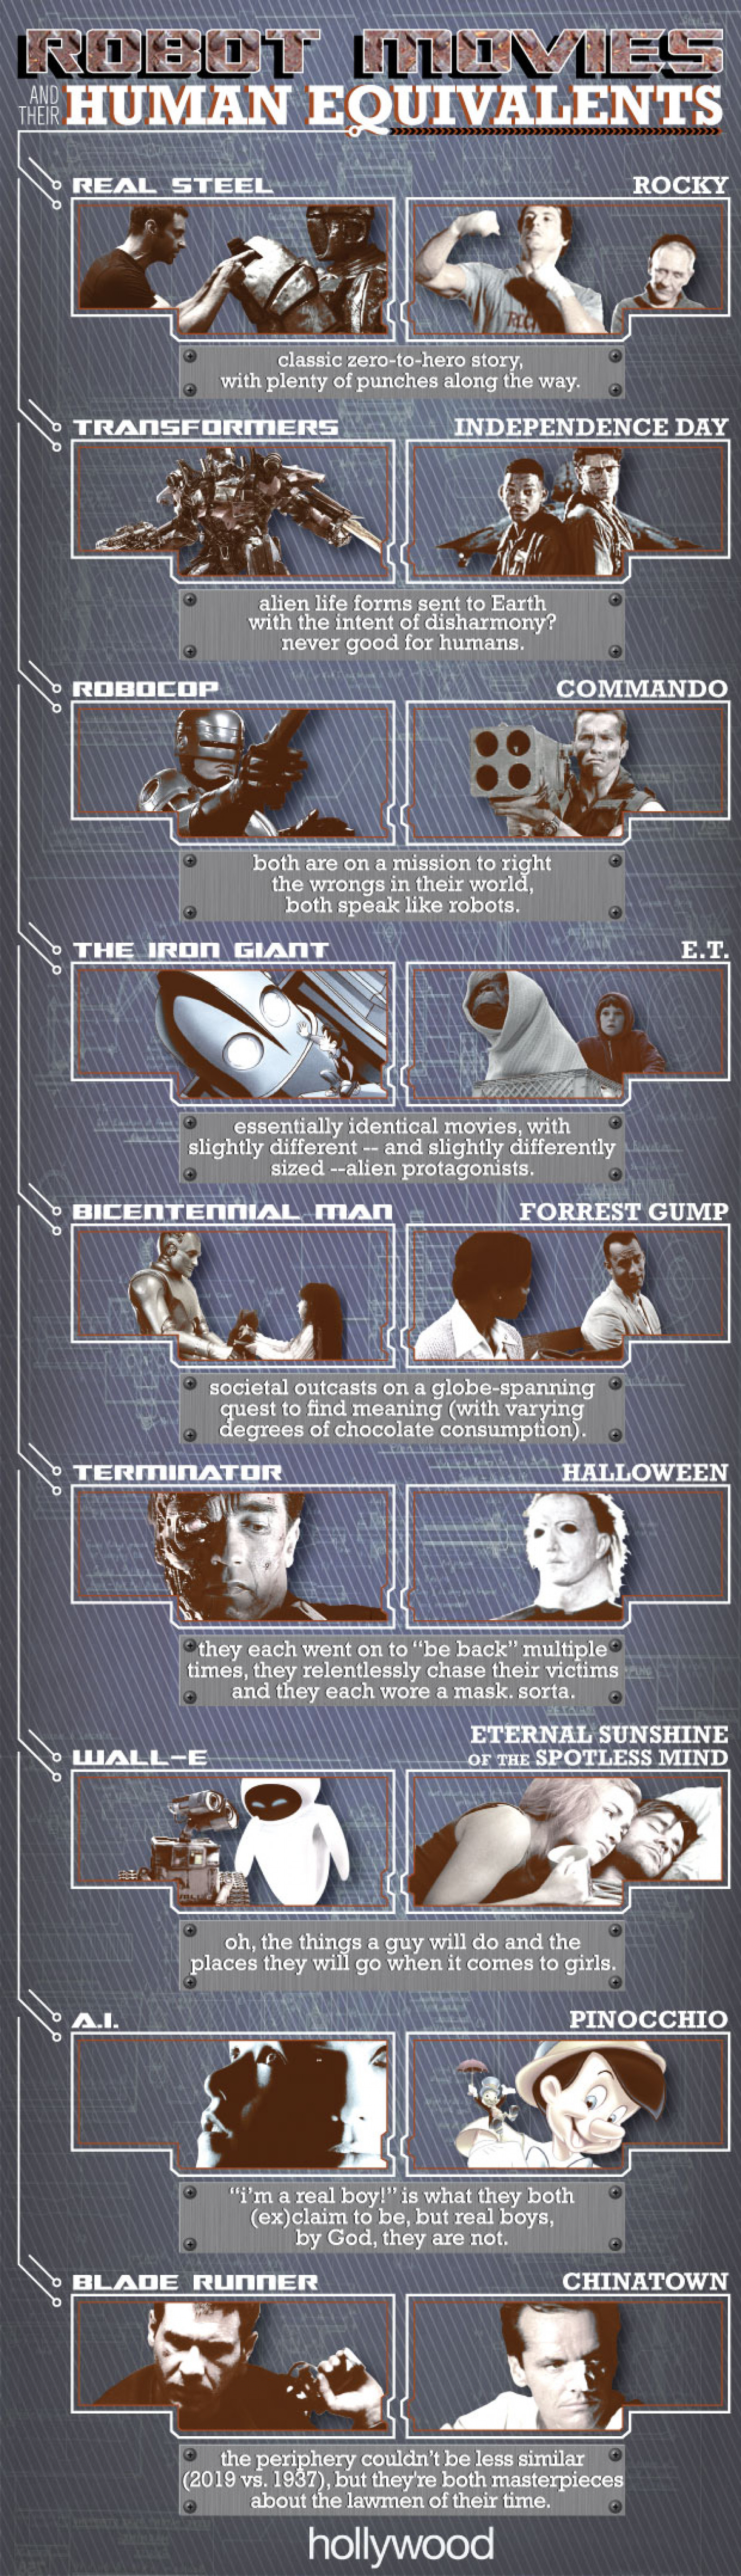 Robot Movies and Their Human Equivalents Infographic